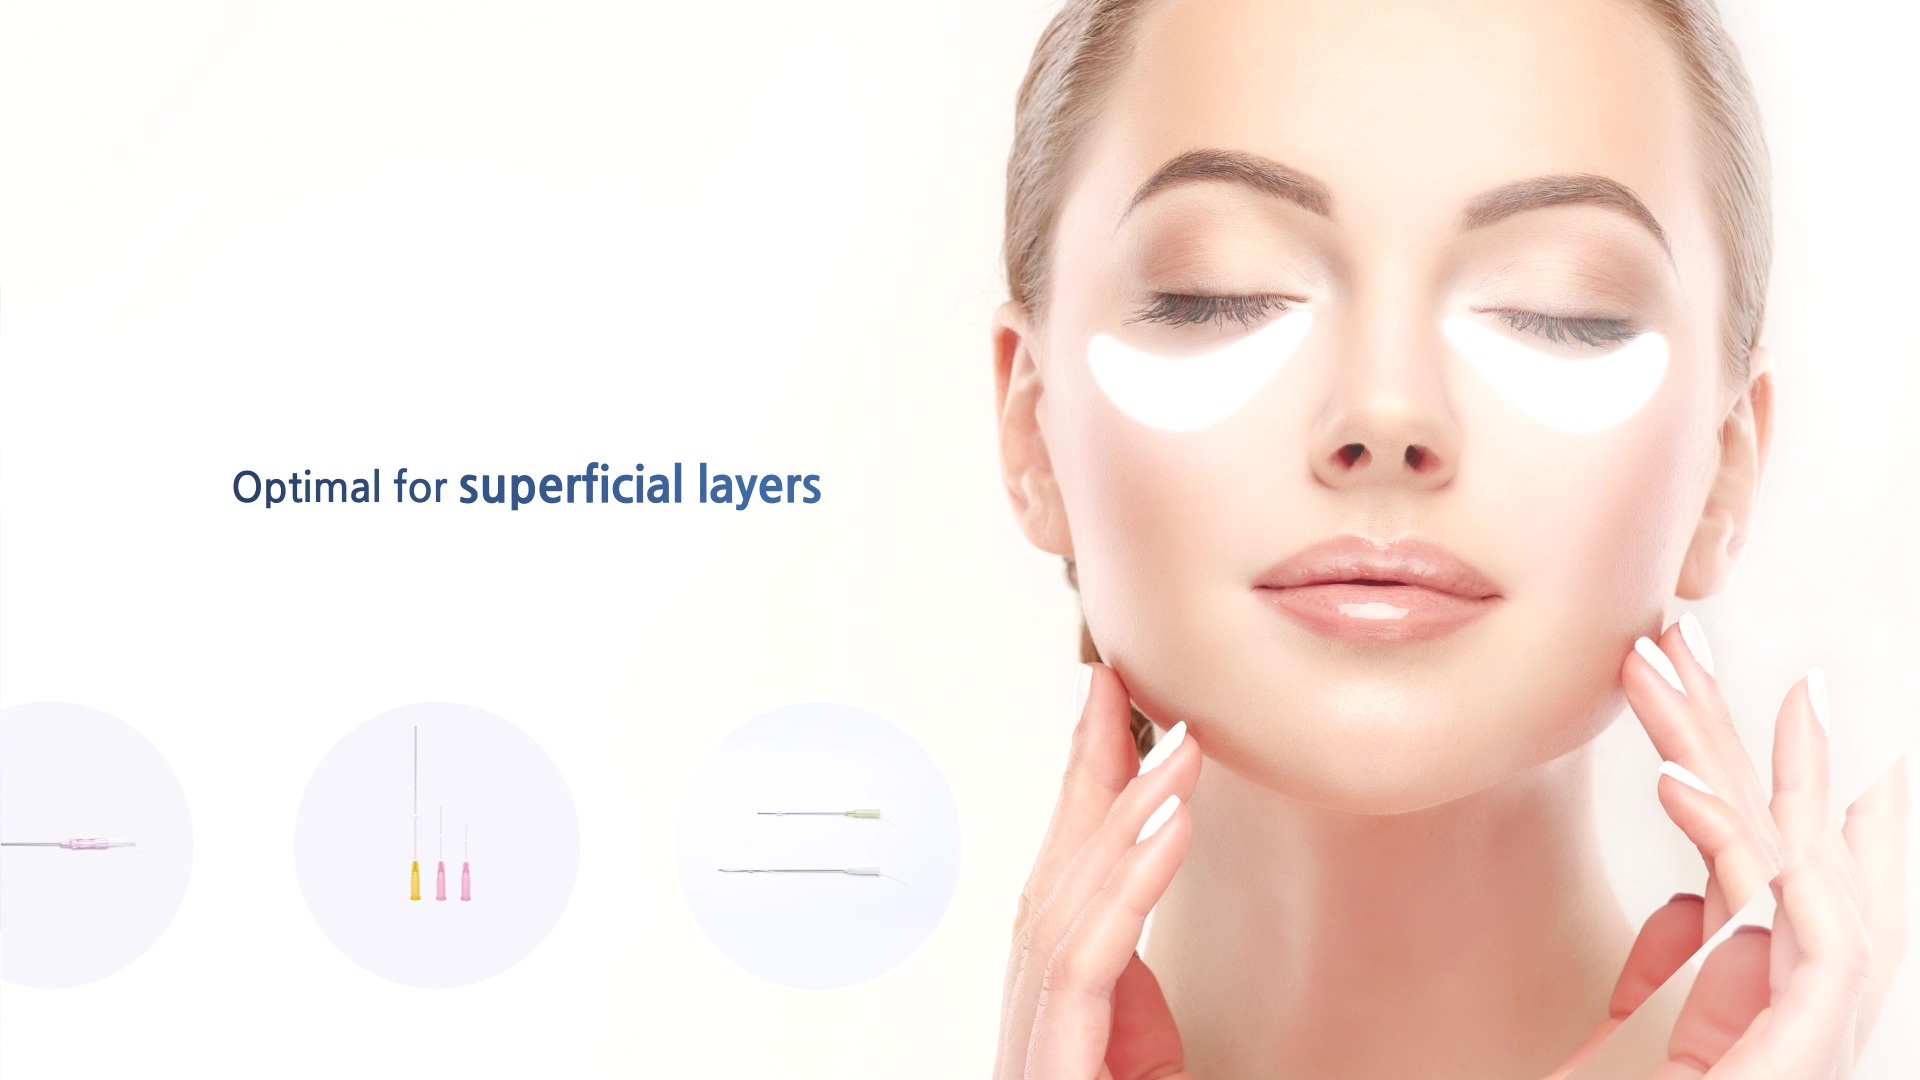 optimal for superficial layers